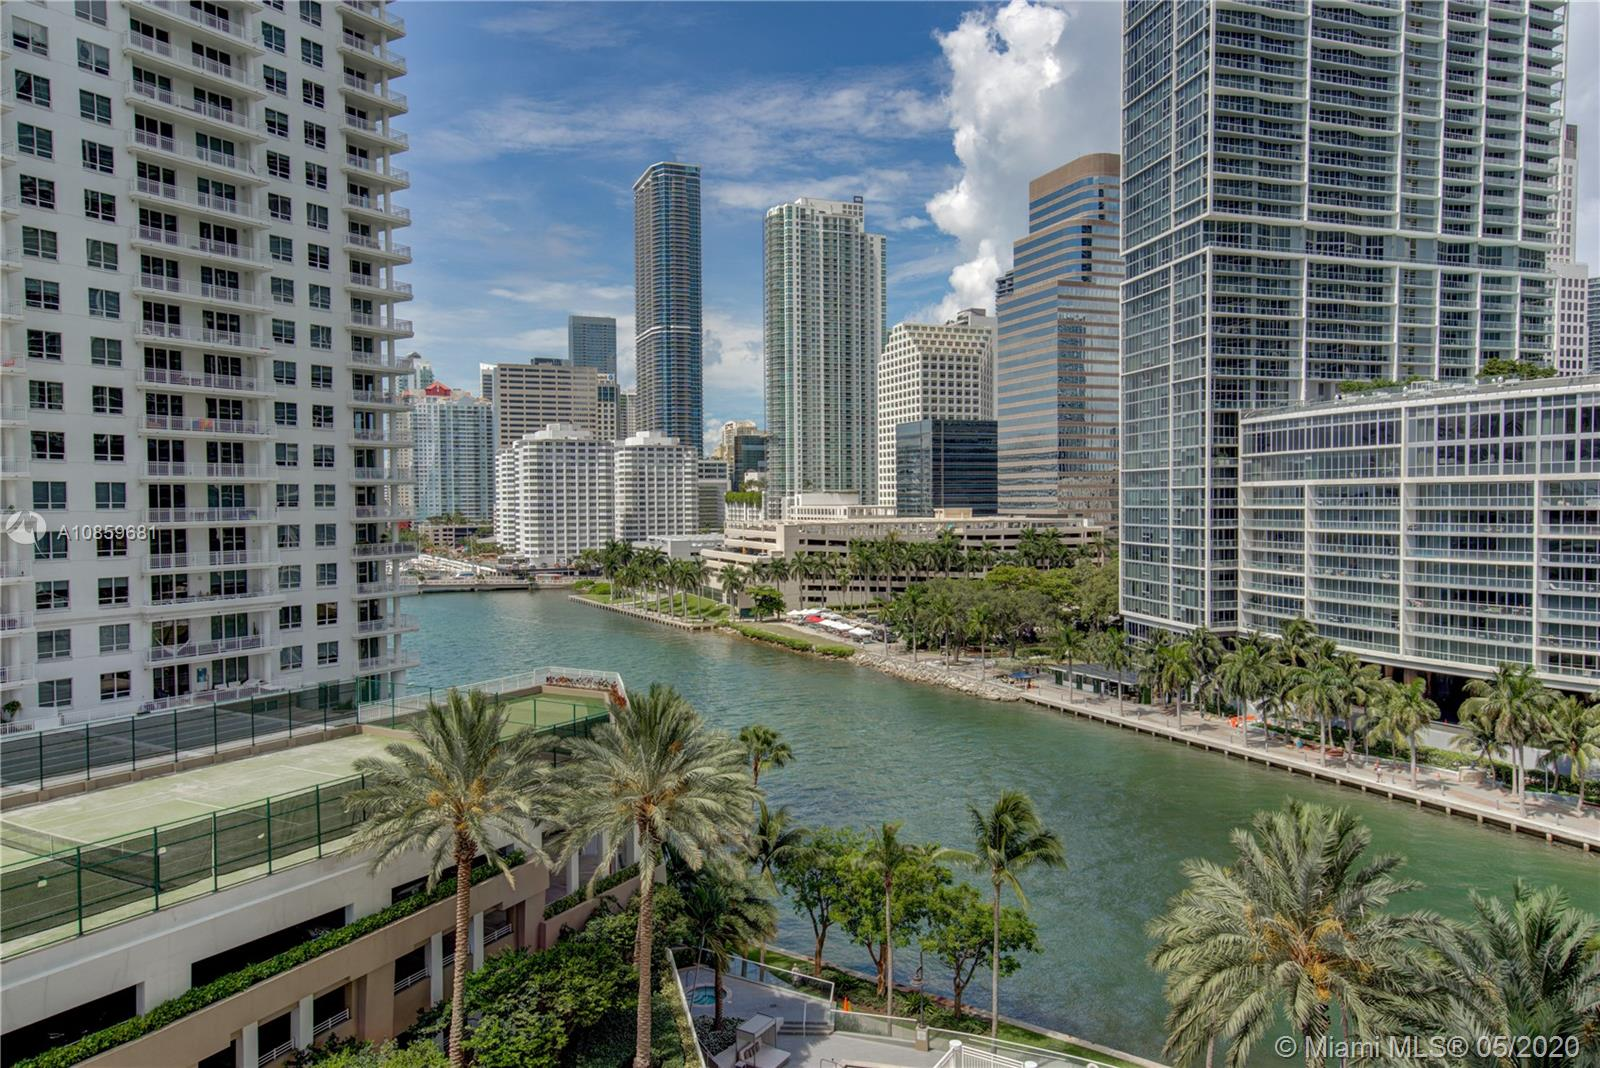 Carbonell #1001 - 901 Brickell Key Blvd #1001, Miami, FL 33131